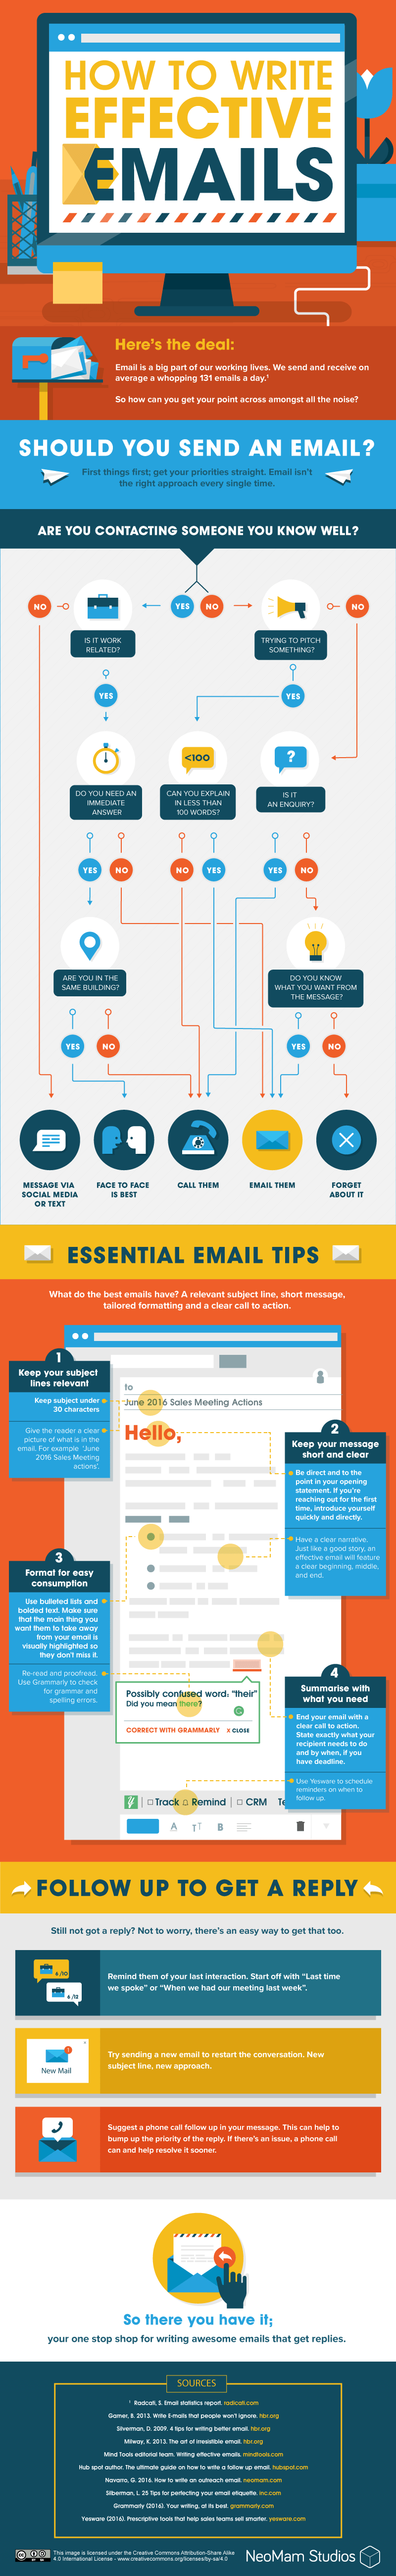 Photo of Your Guide To Writing Effective Emails [INFOGRAPHIC]